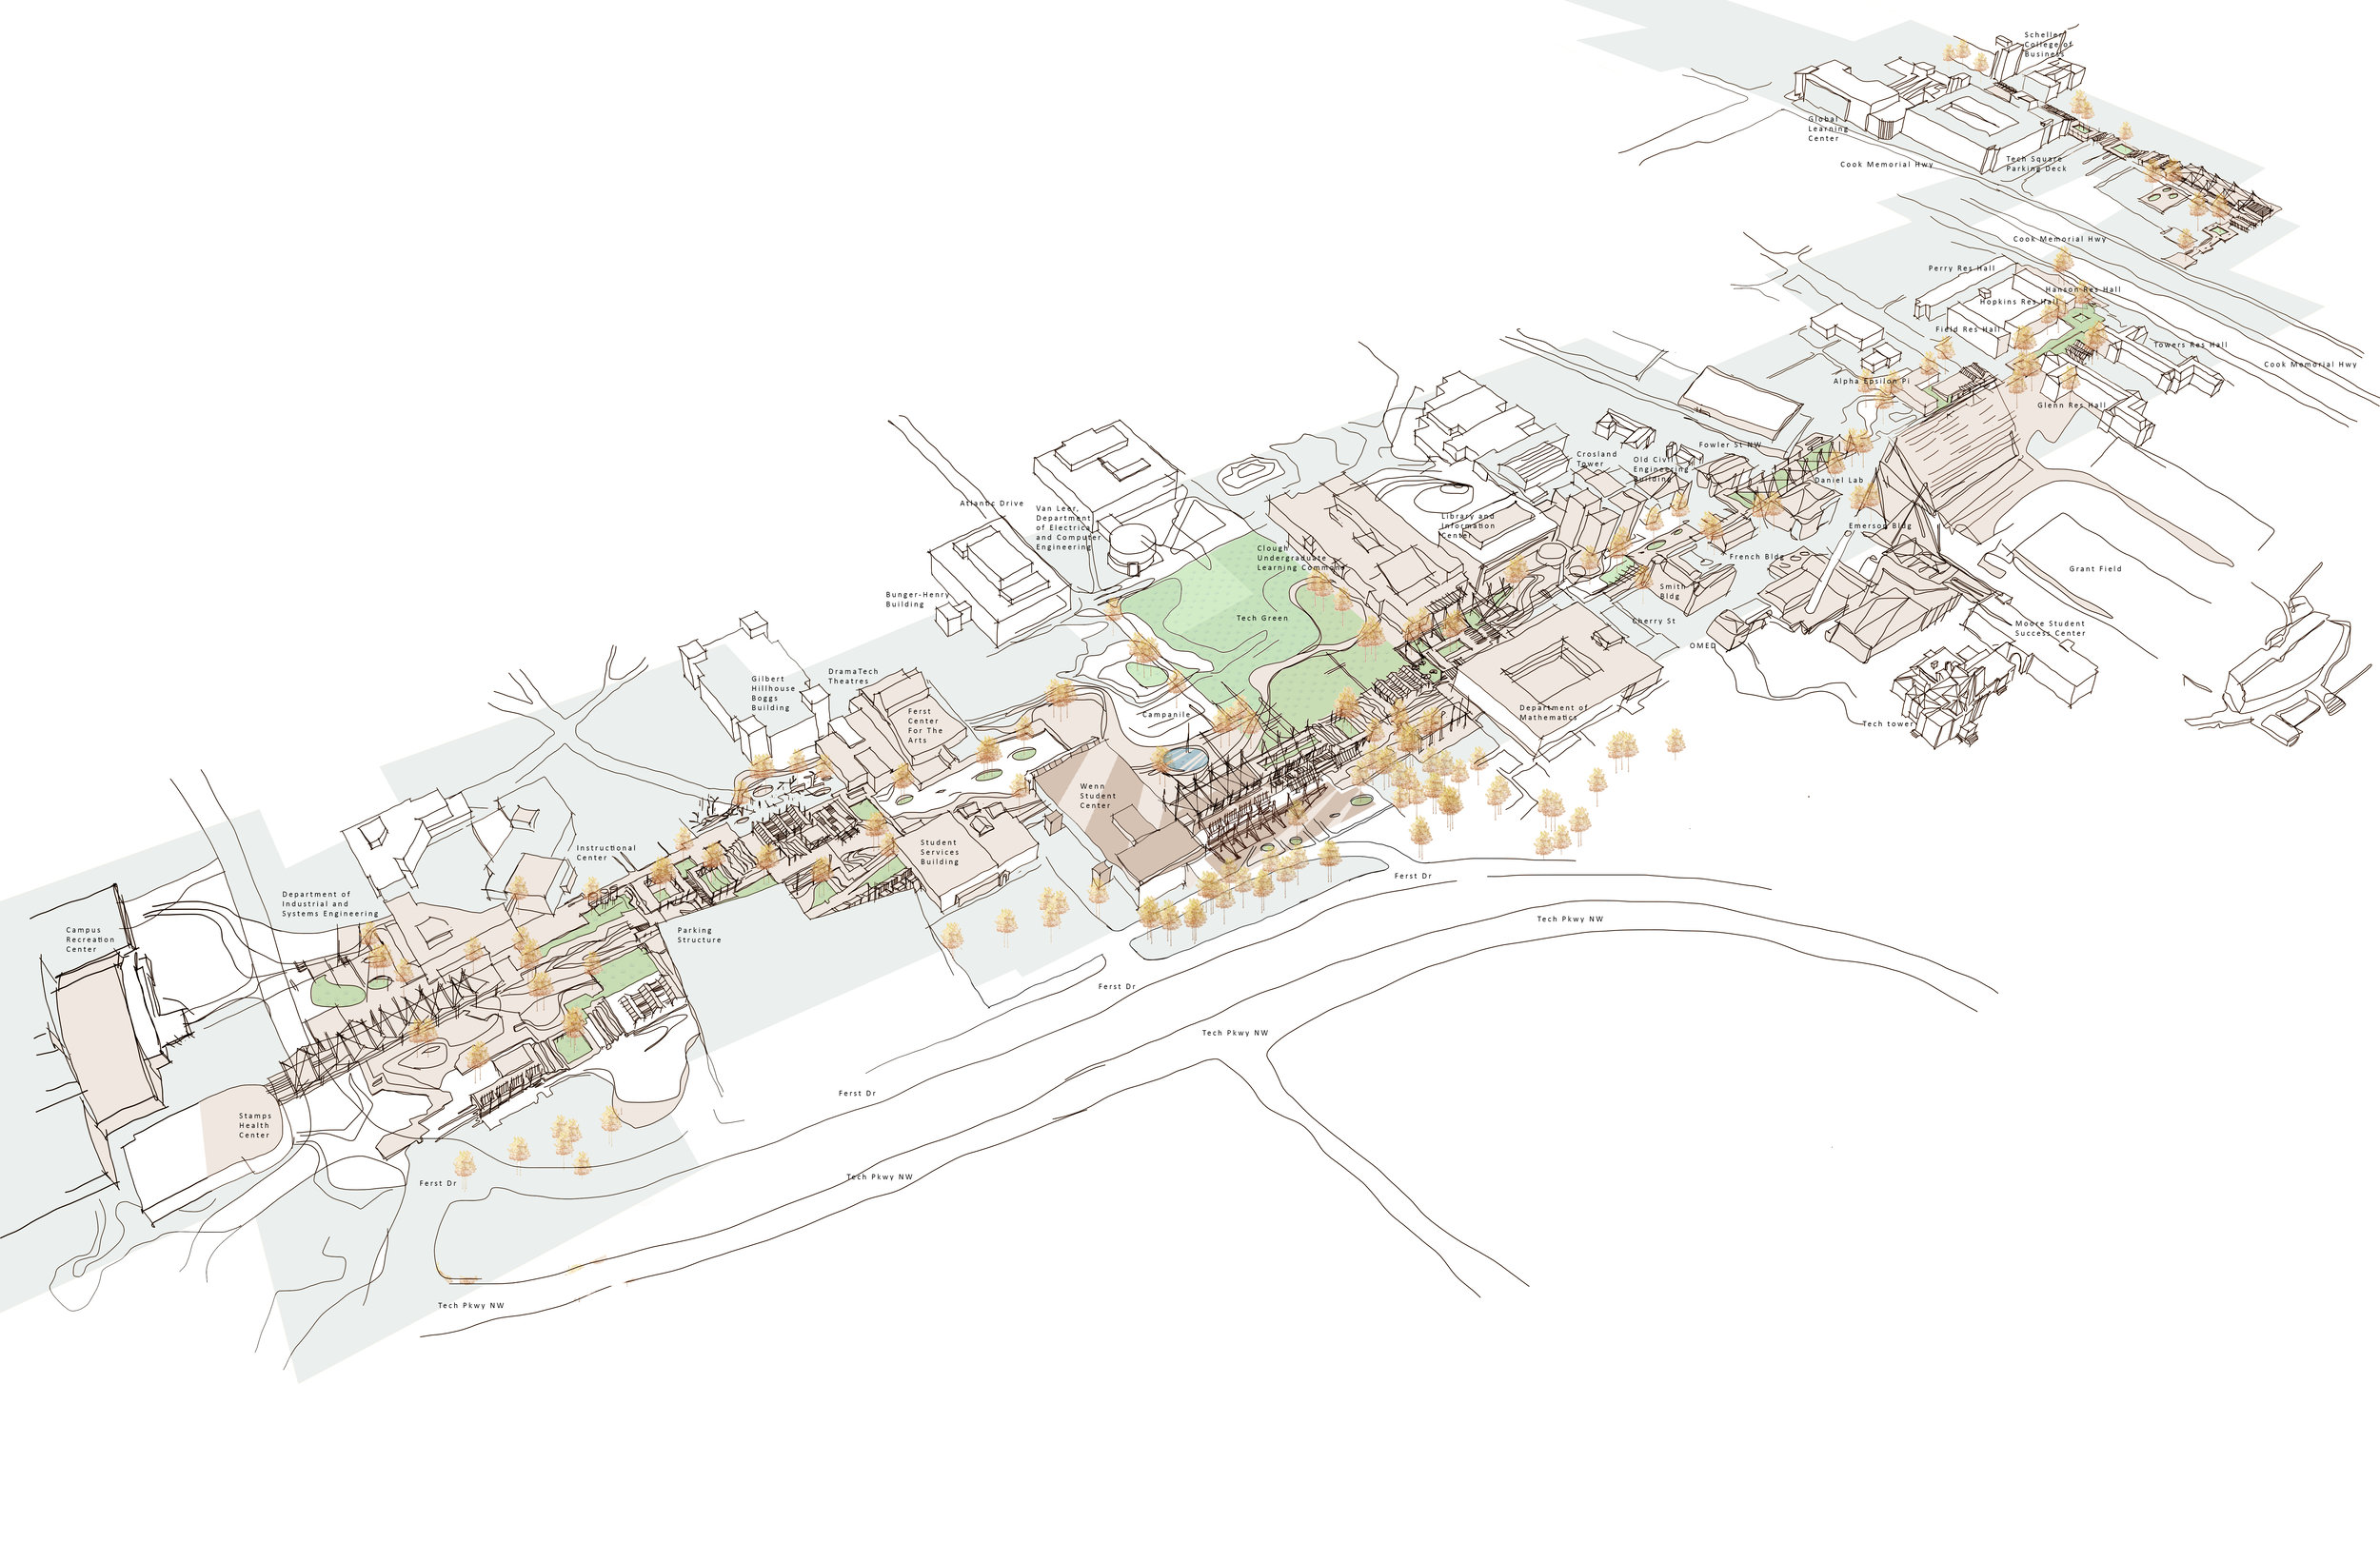 Workshop Selected for Georgia Tech Design Competition